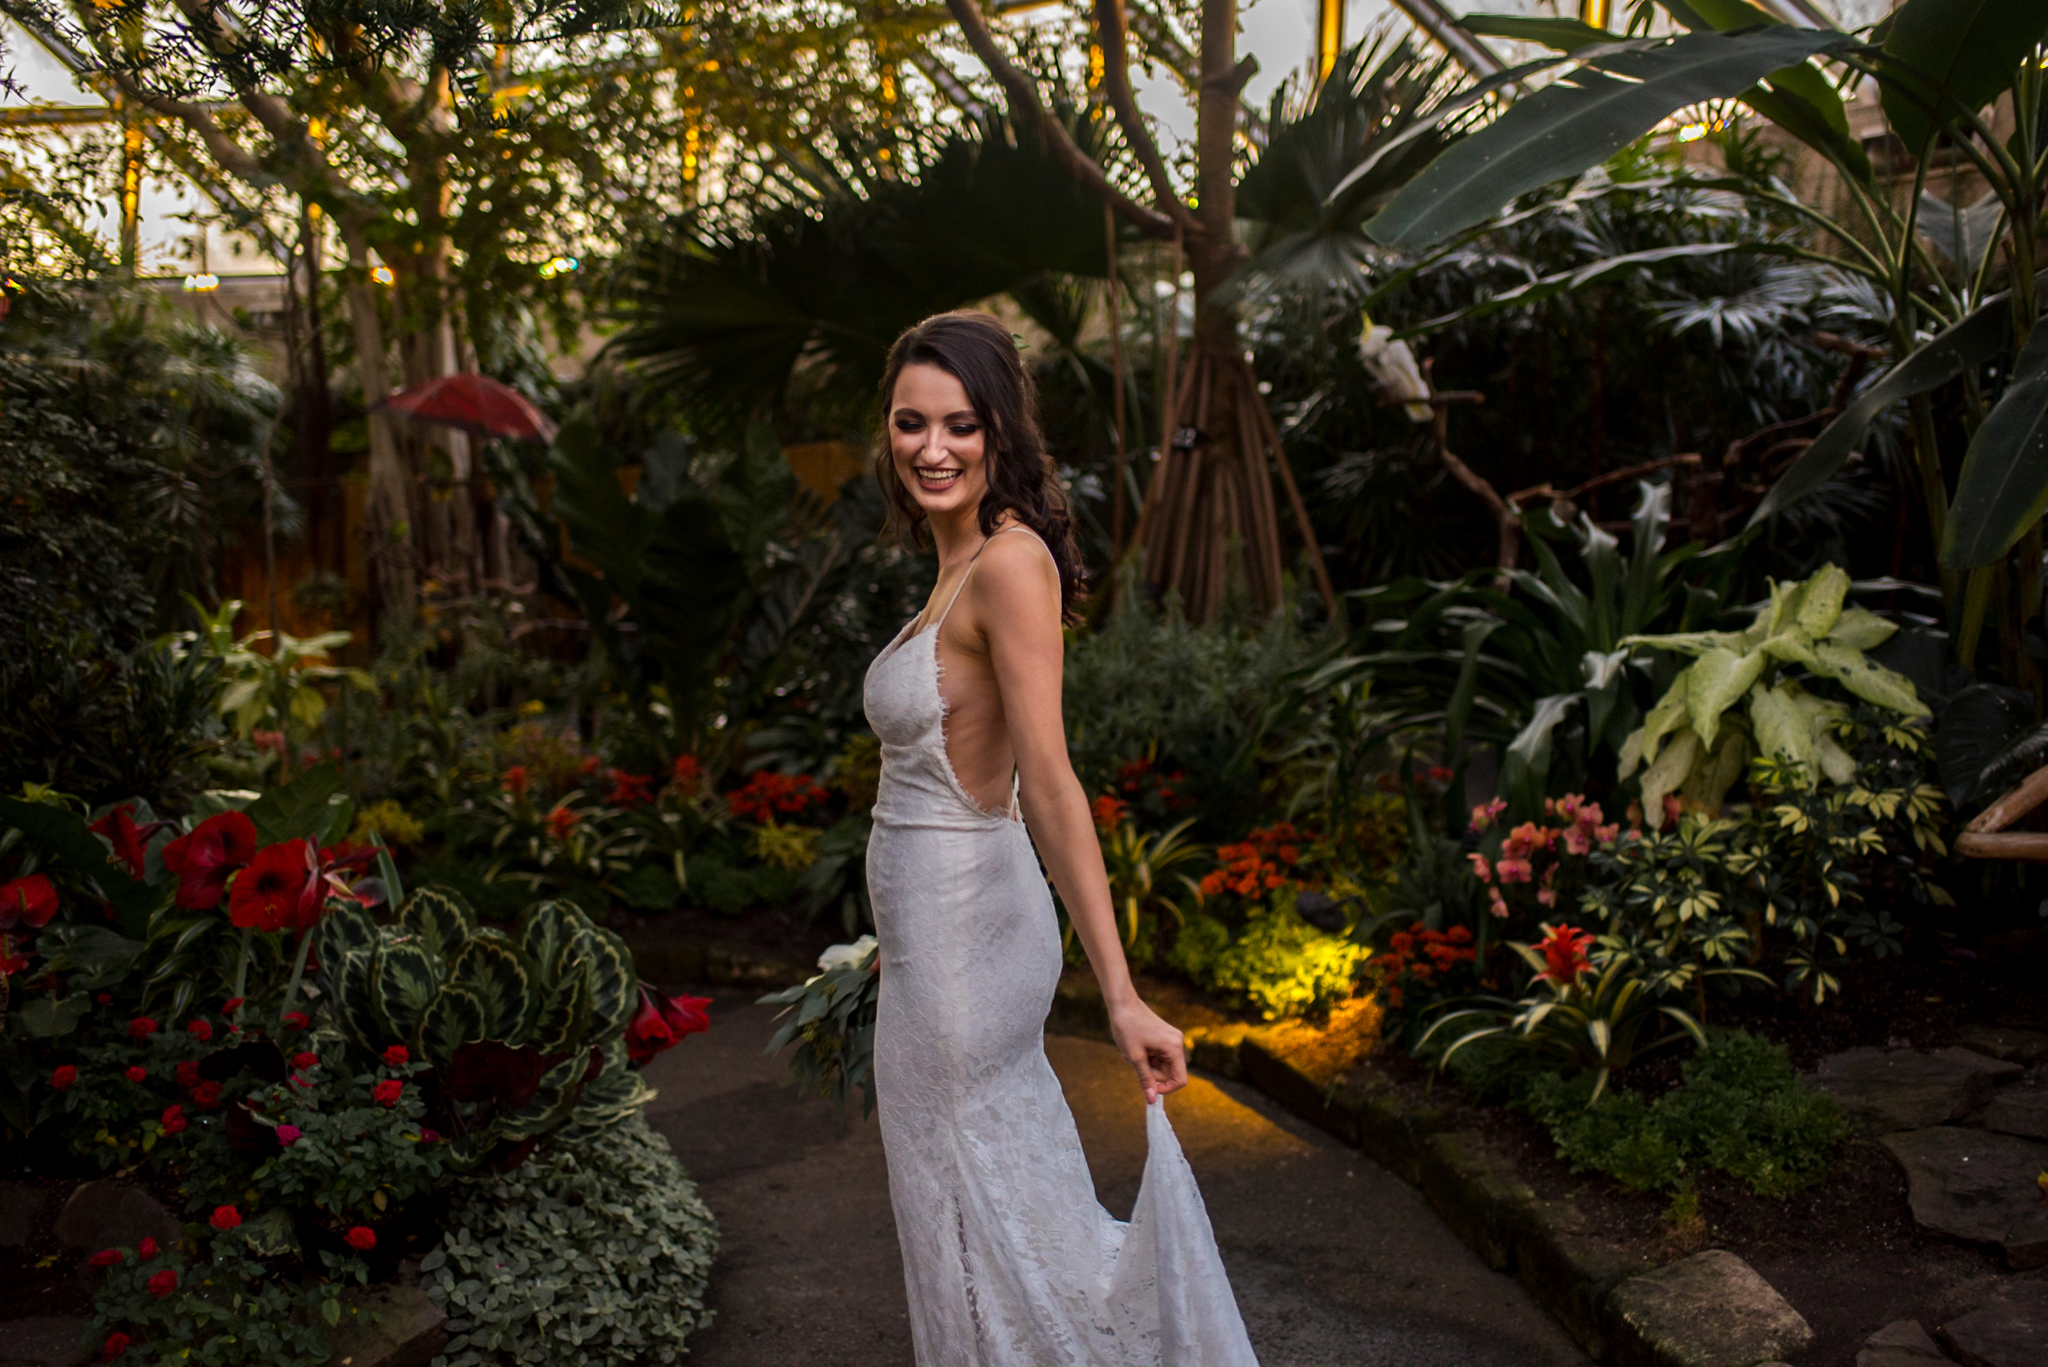 Queen Elizabeth Park Wedding Photographer-80.jpg